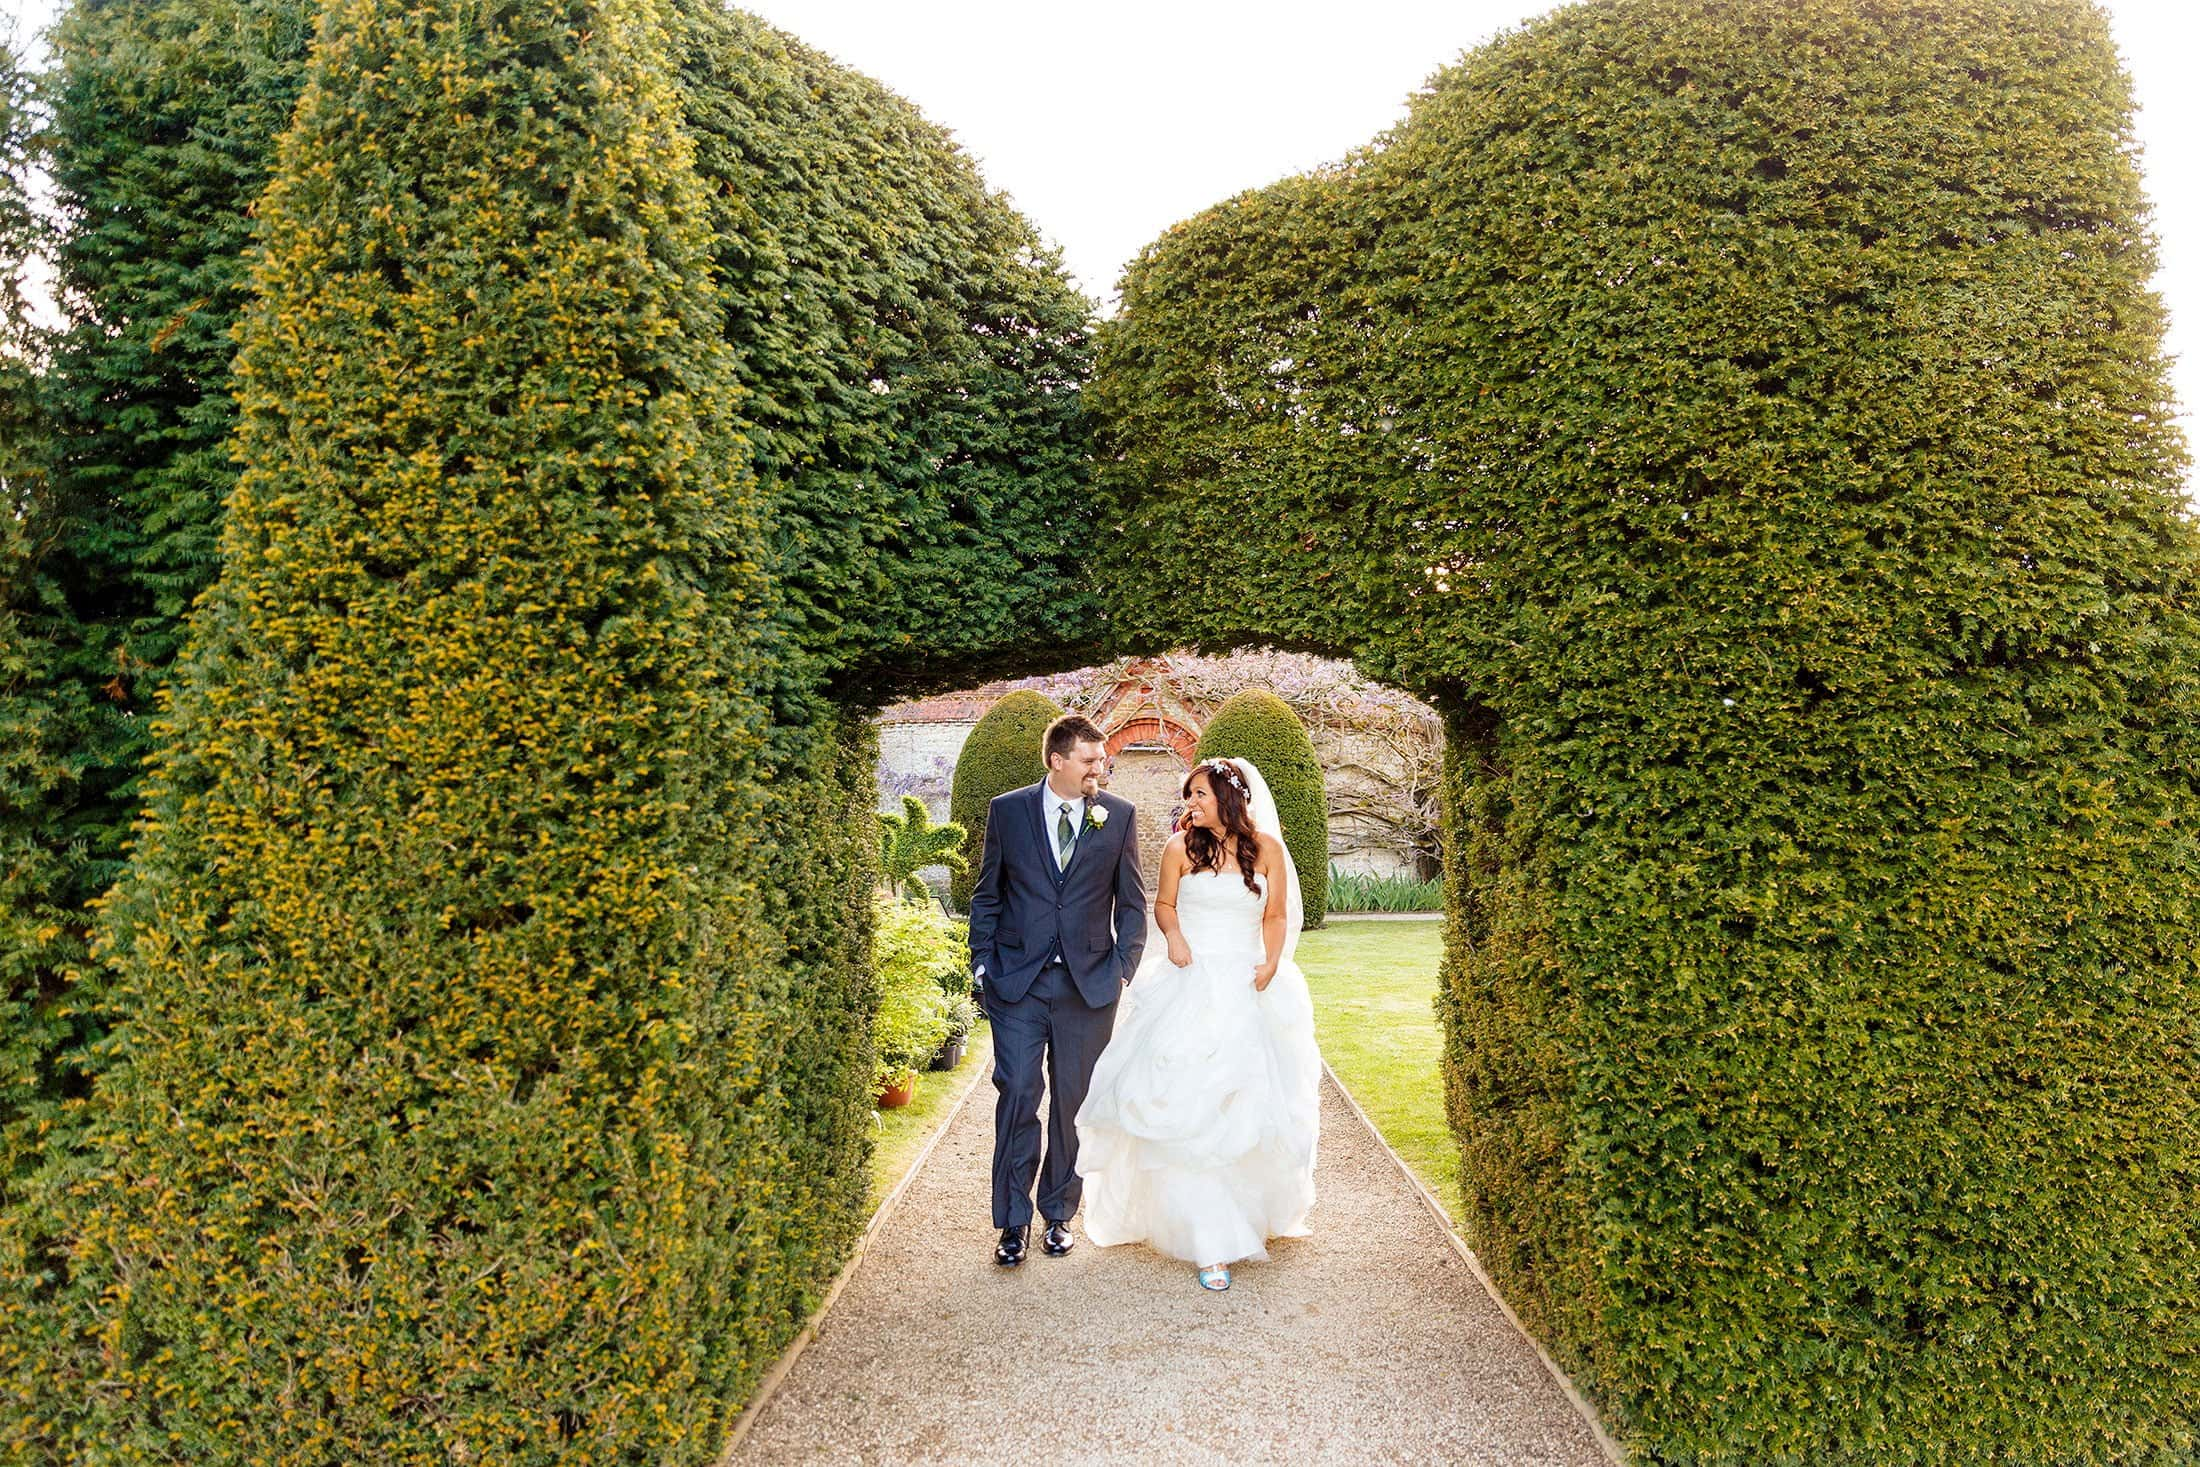 LOSELEY WEDDING PHOTOGRAPHY OF HARRIET & KEVIN